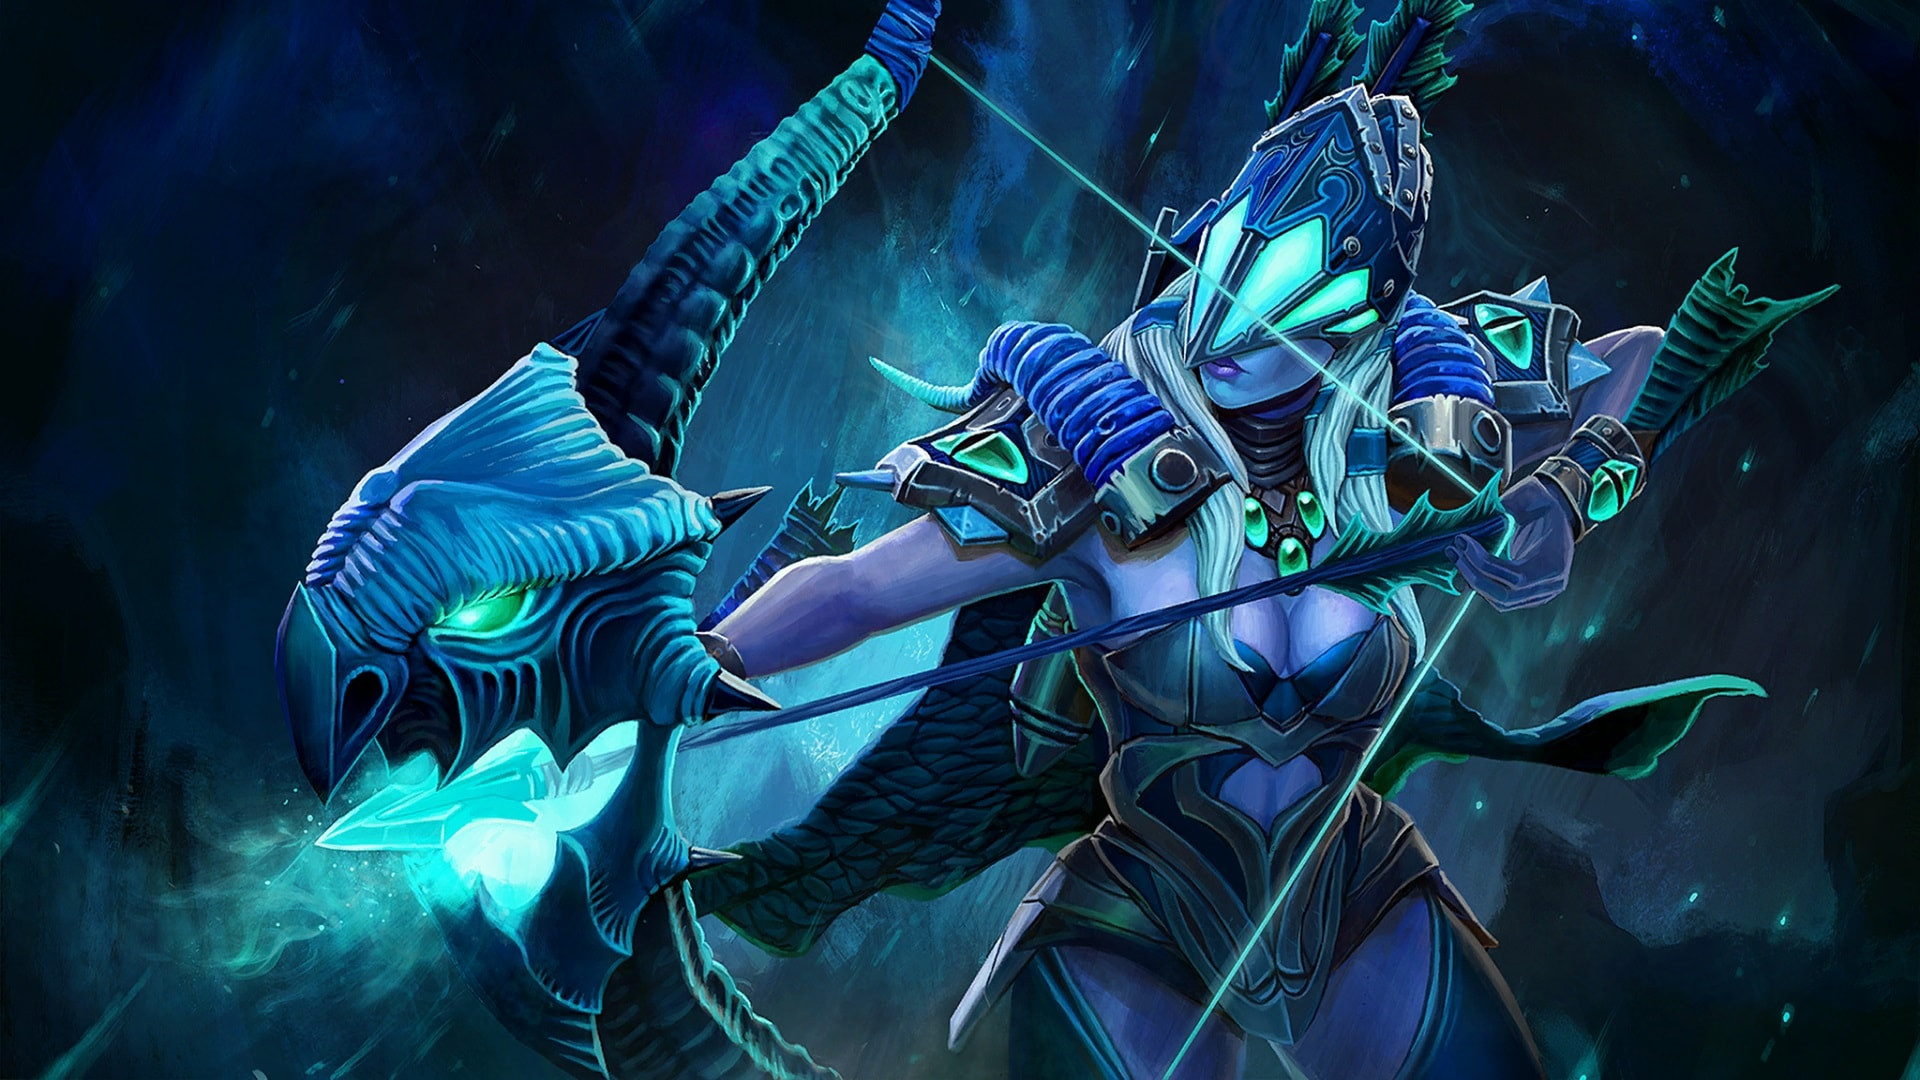 Dota2 Drow Ranger Hd Wallpapers 7wallpapers Net